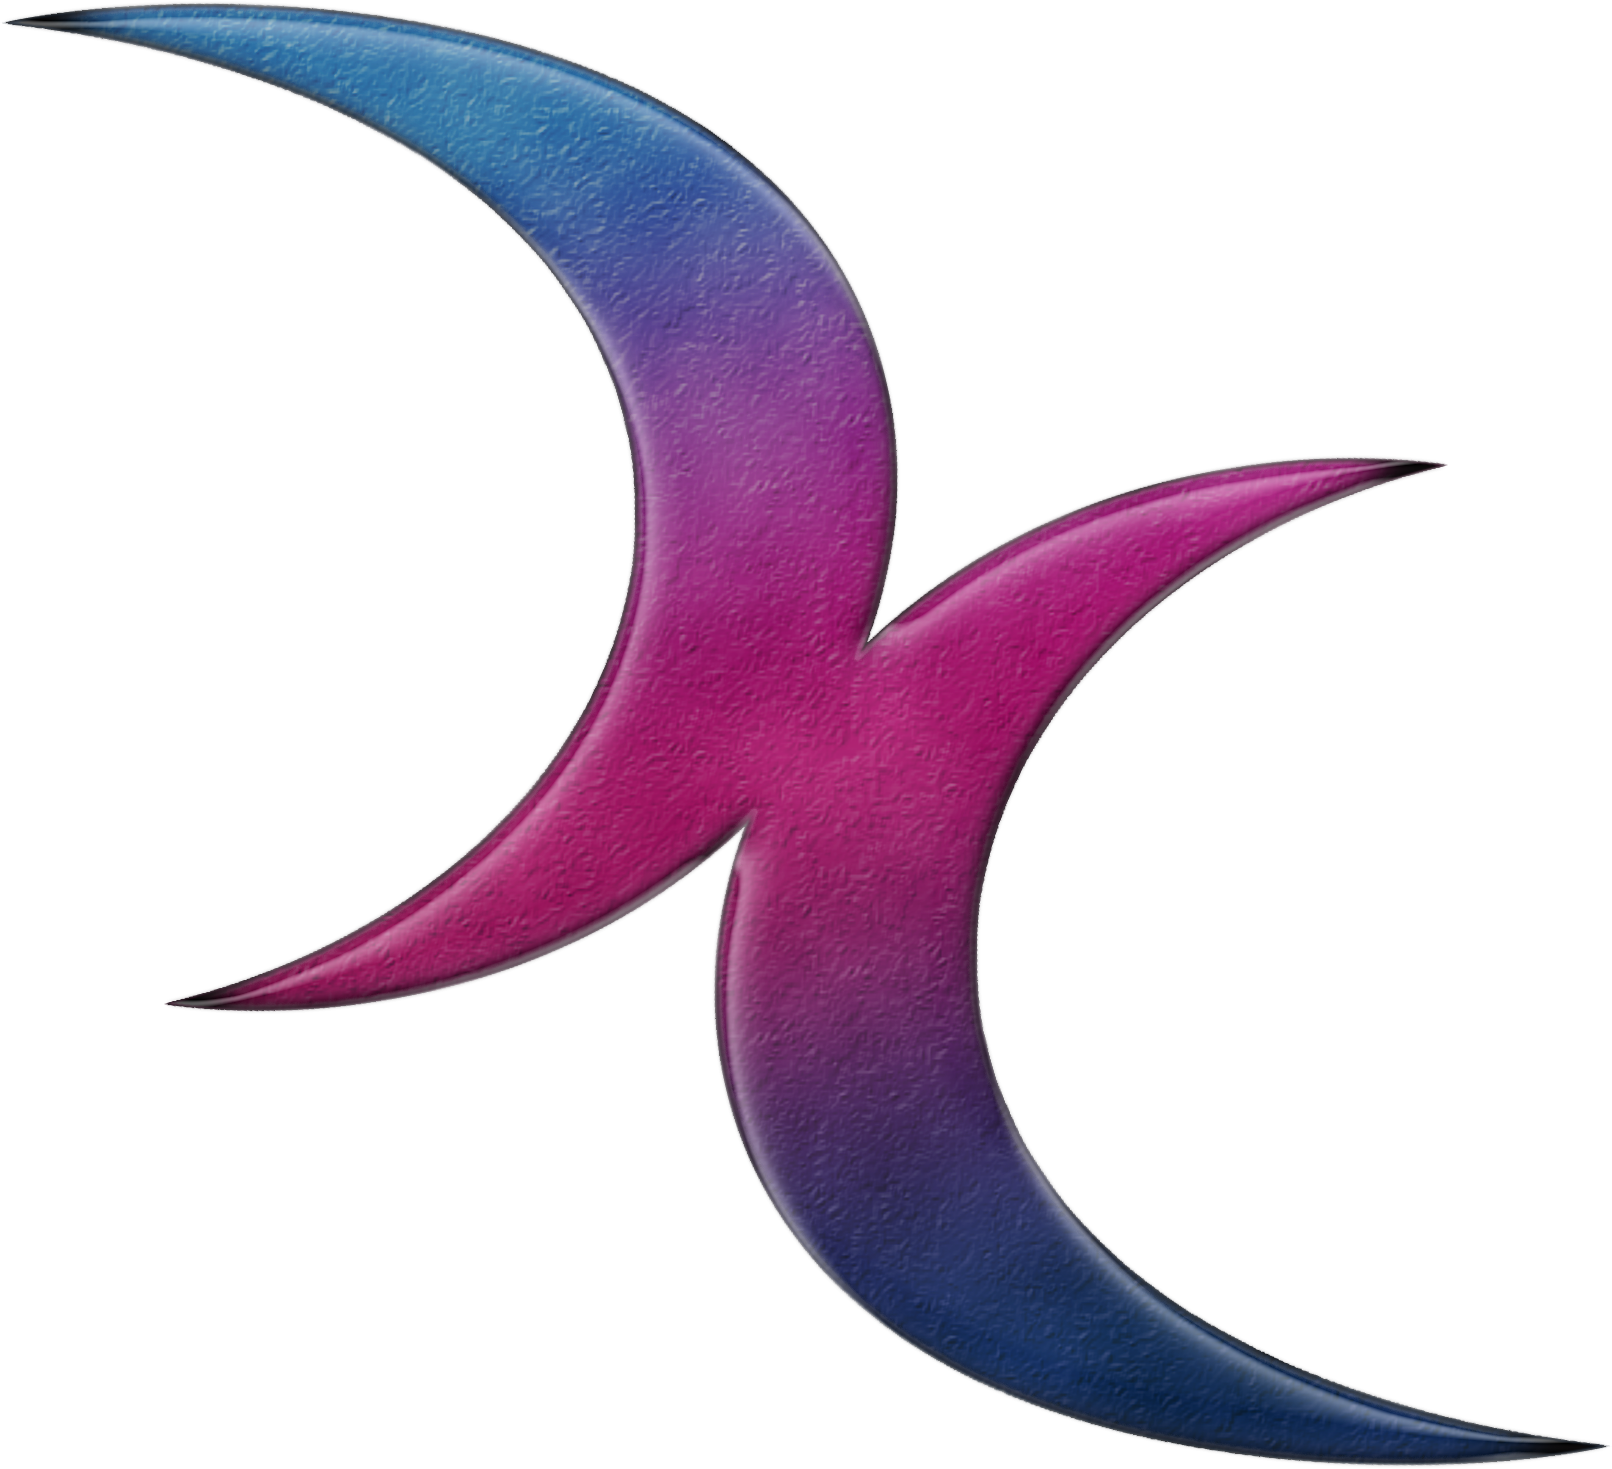 Bisexual community colors